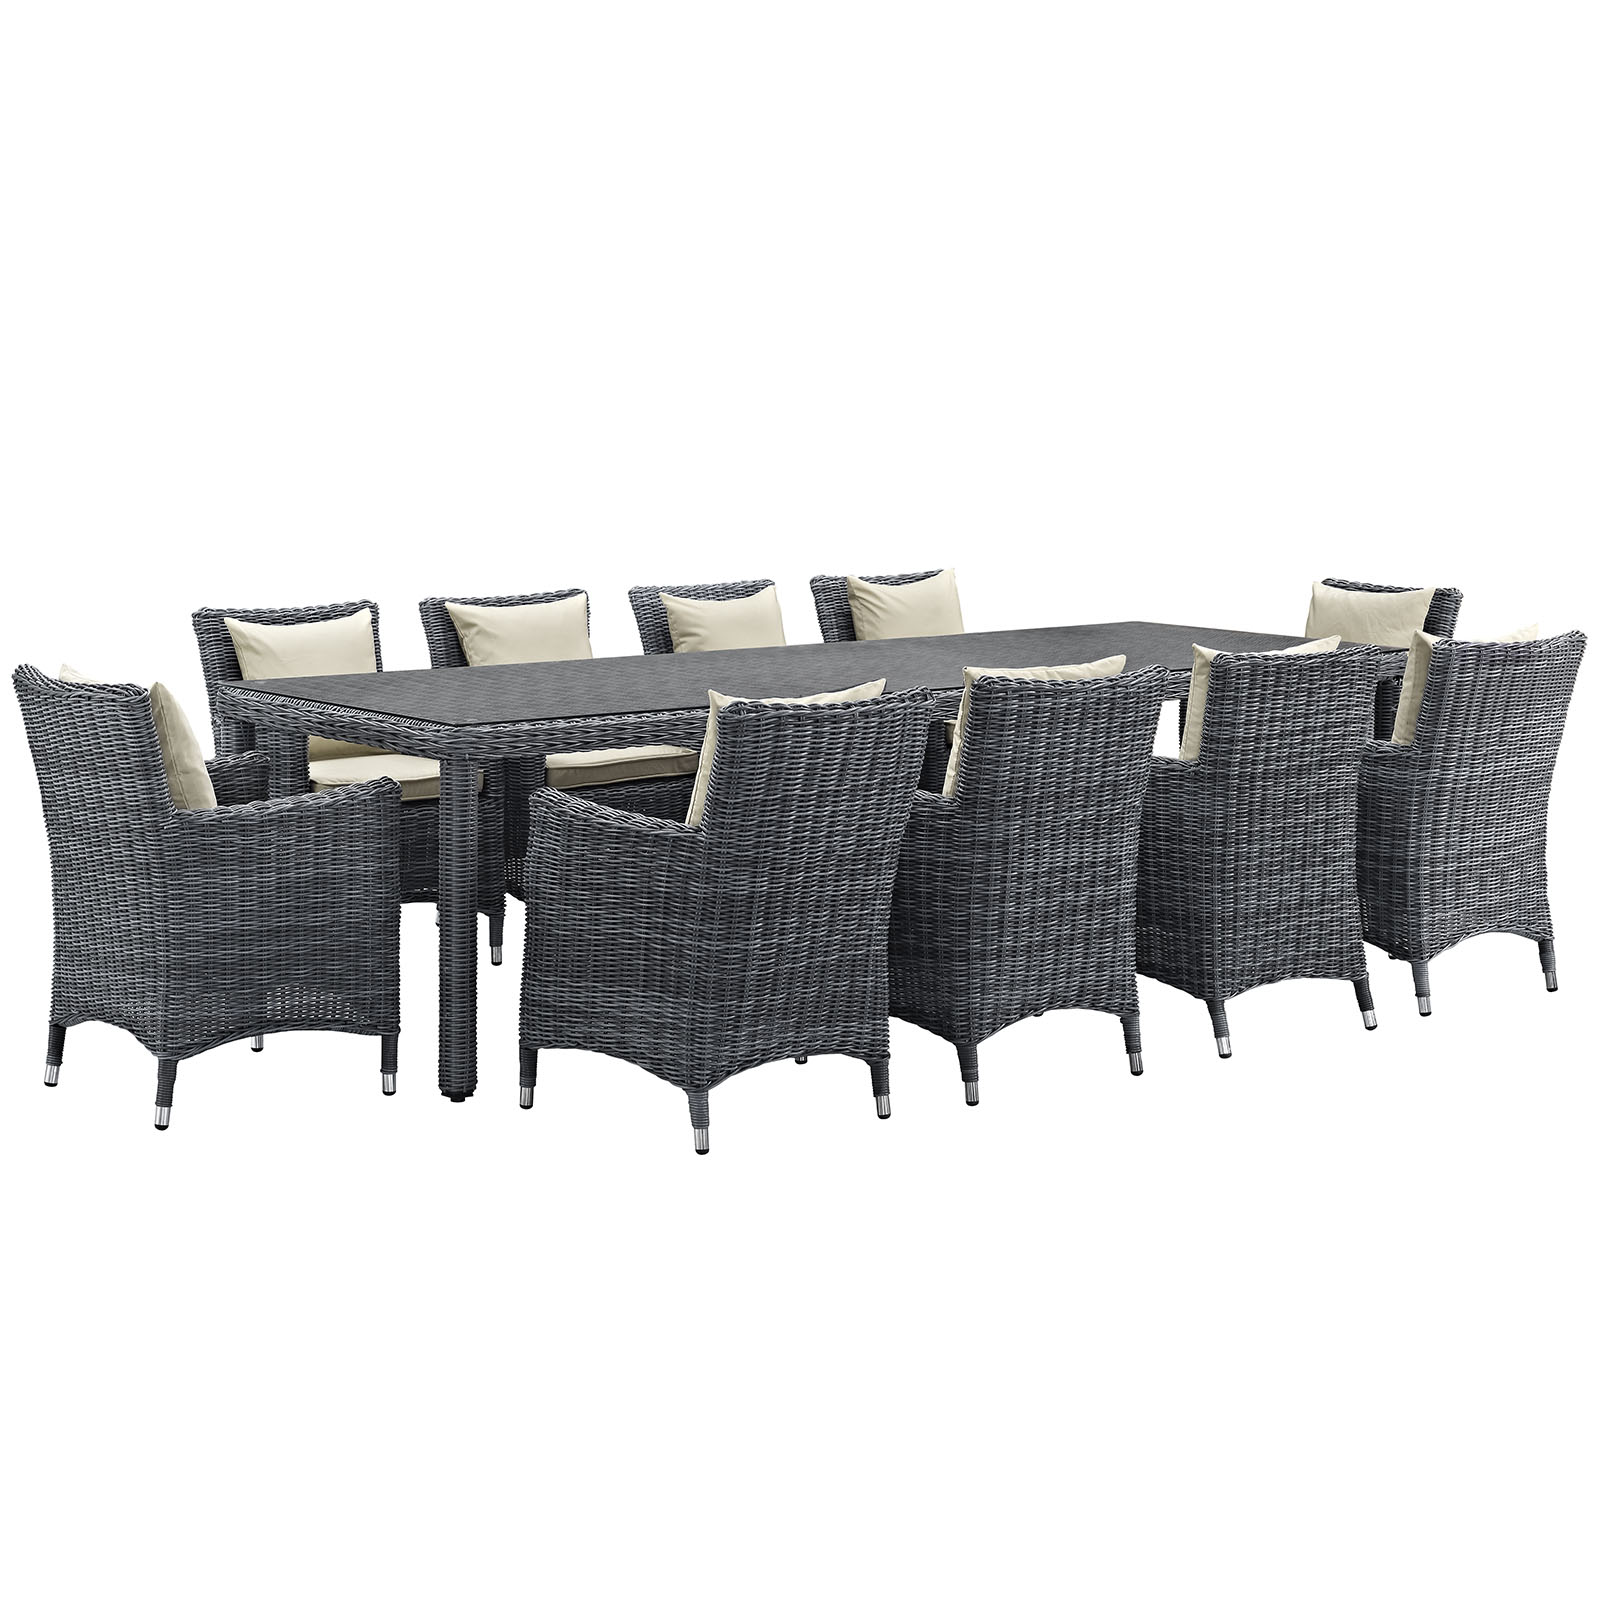 Modern Contemporary Urban Design Outdoor Patio Balcony Eleven PCS Dining Chairs and Table Set, Beige, Rattan